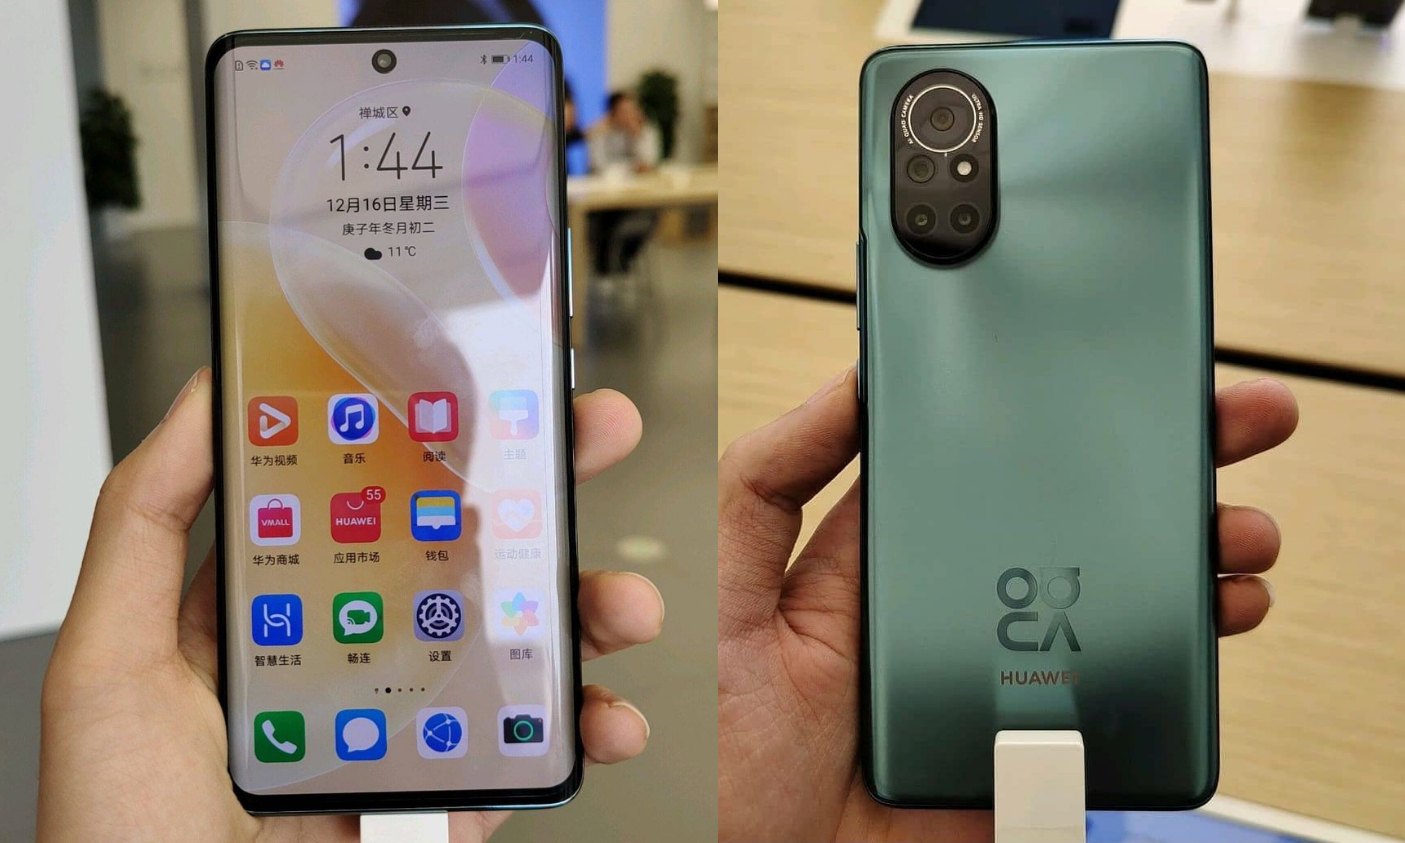 Huawei Nova 8 and Nova 8 Pro - First Live Hands On Images Leaked Online